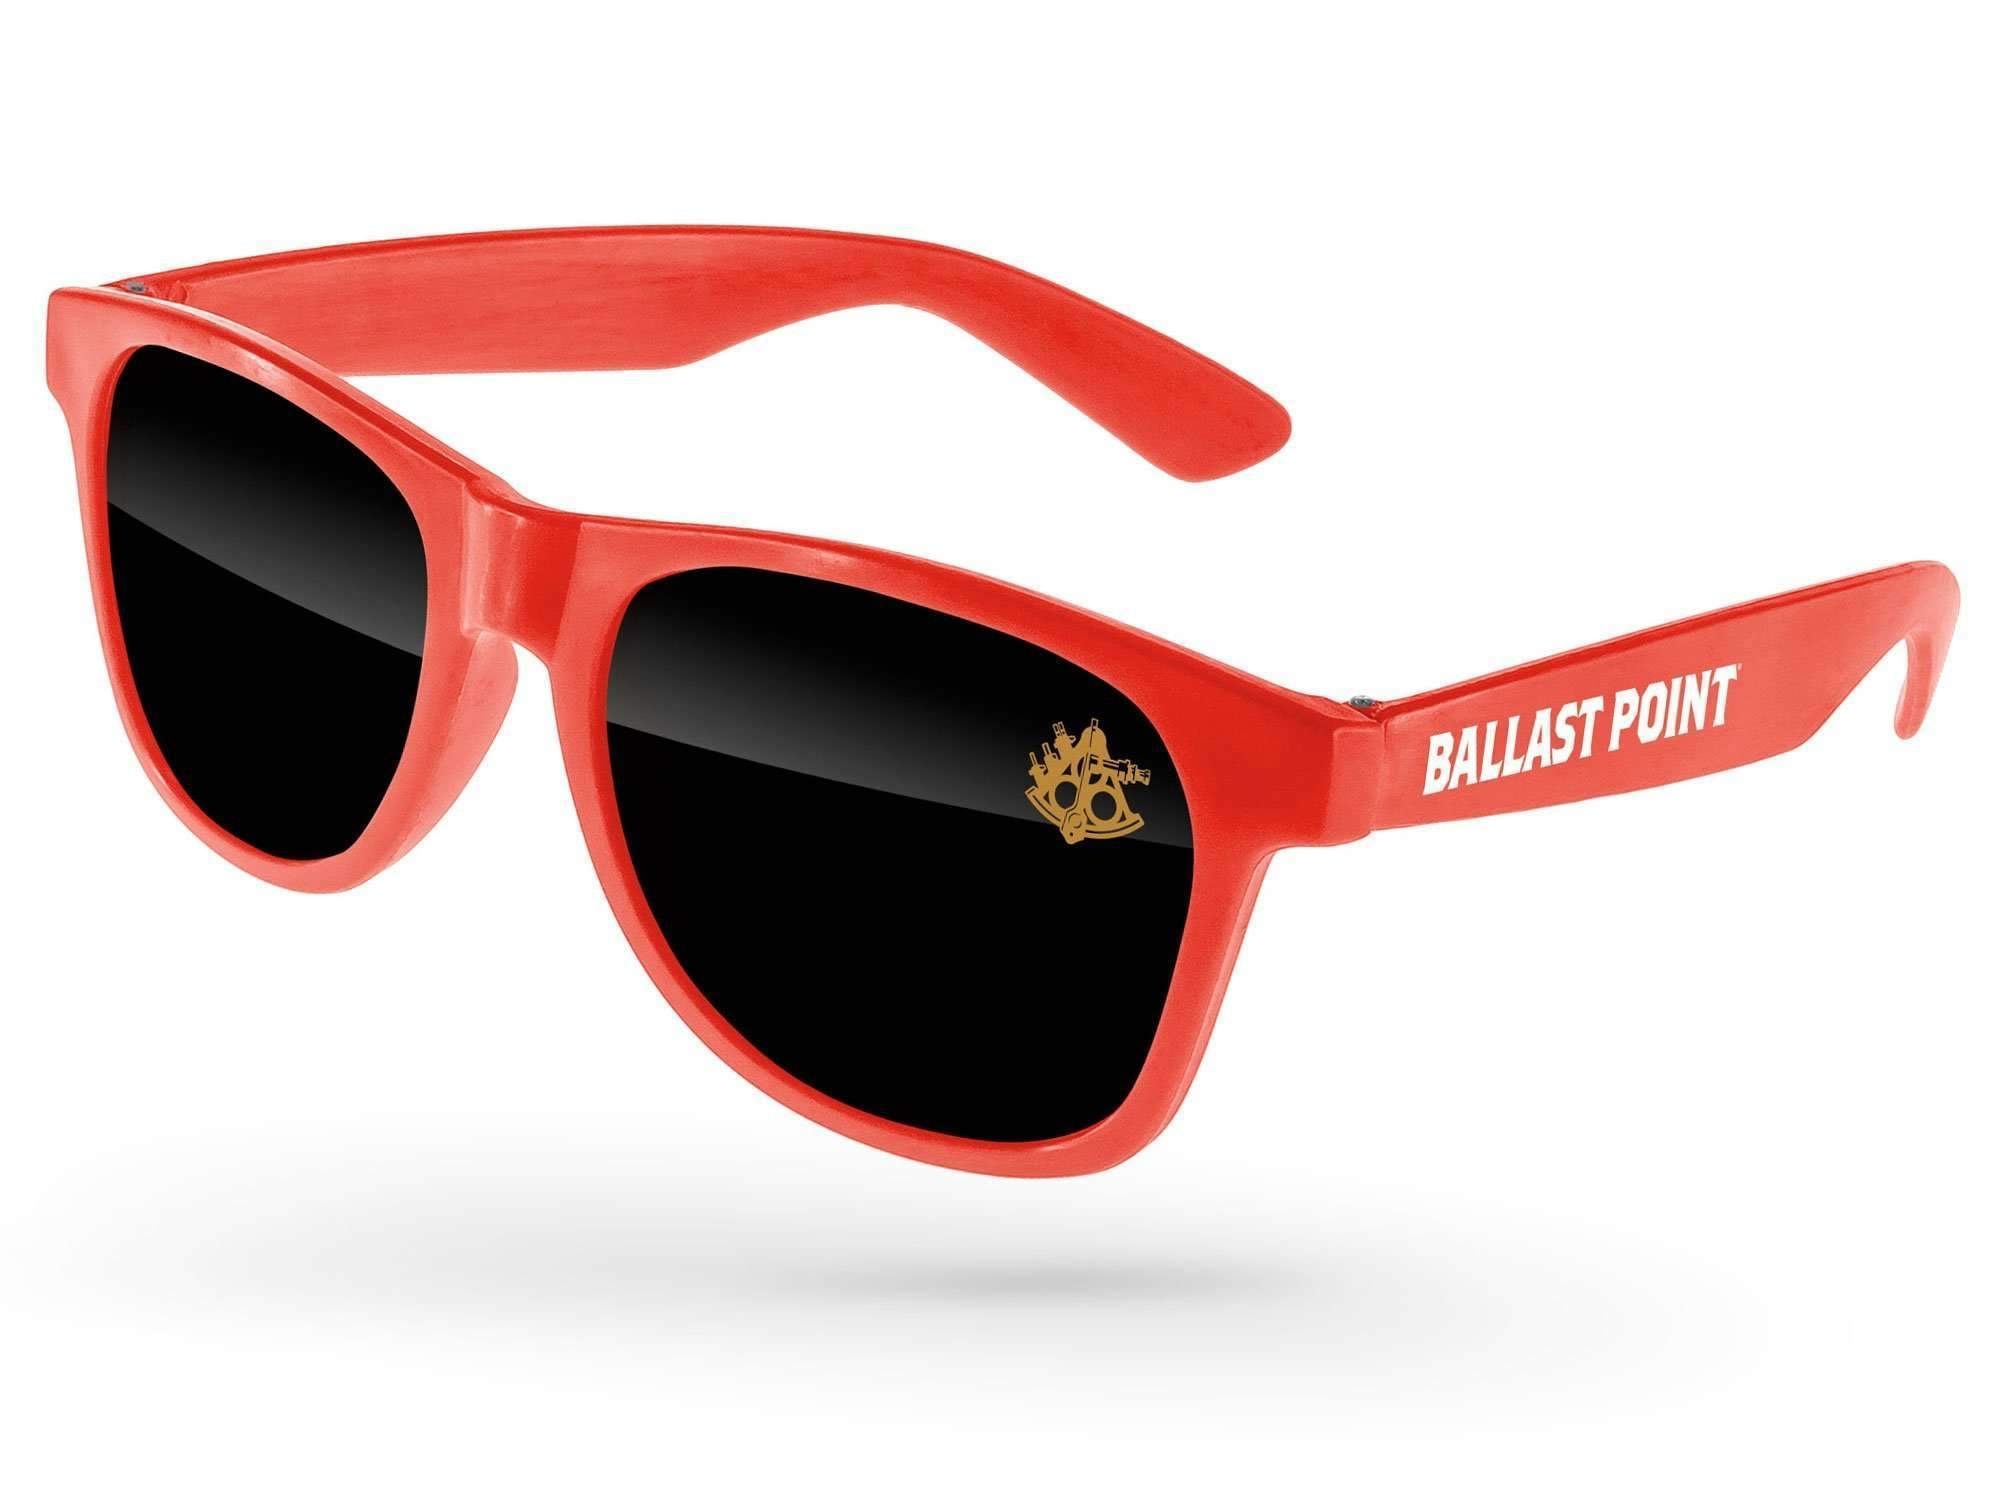 RD510-P - Value Retro Promotional Sunglasses w/ 1-color lens & temple imprint